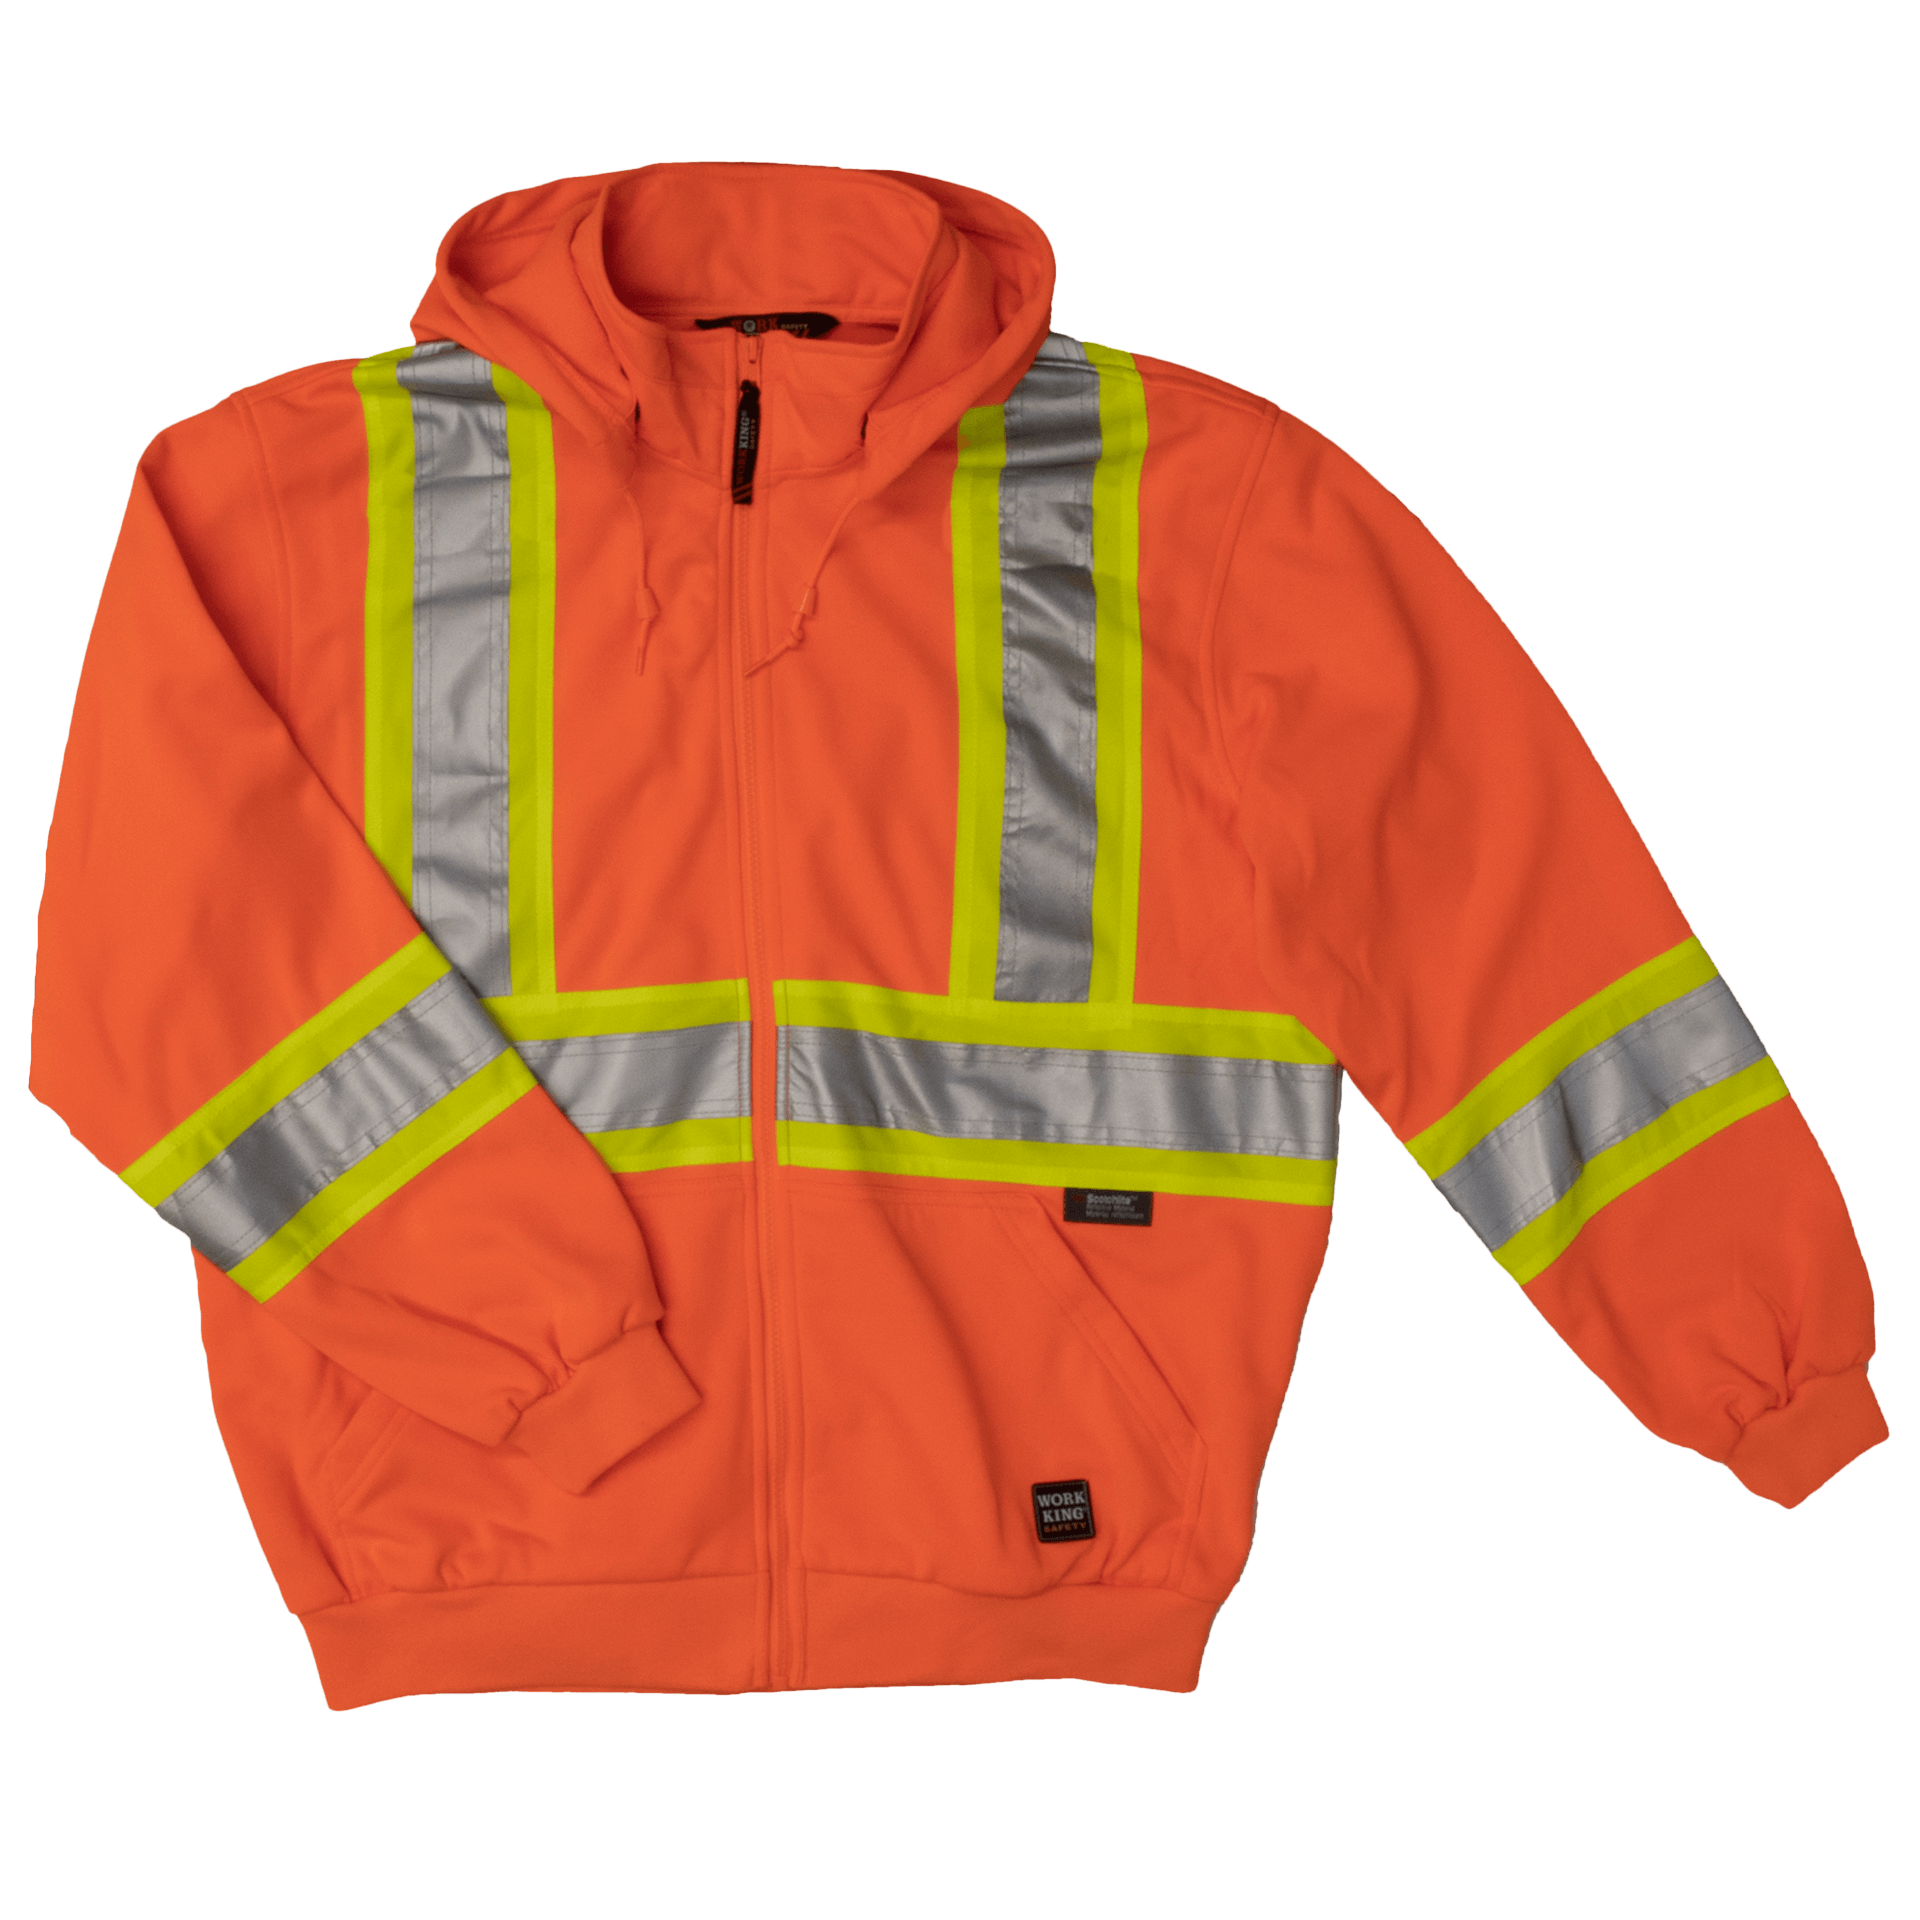 High Visibility Safety Hoodie - Tough Duck S494